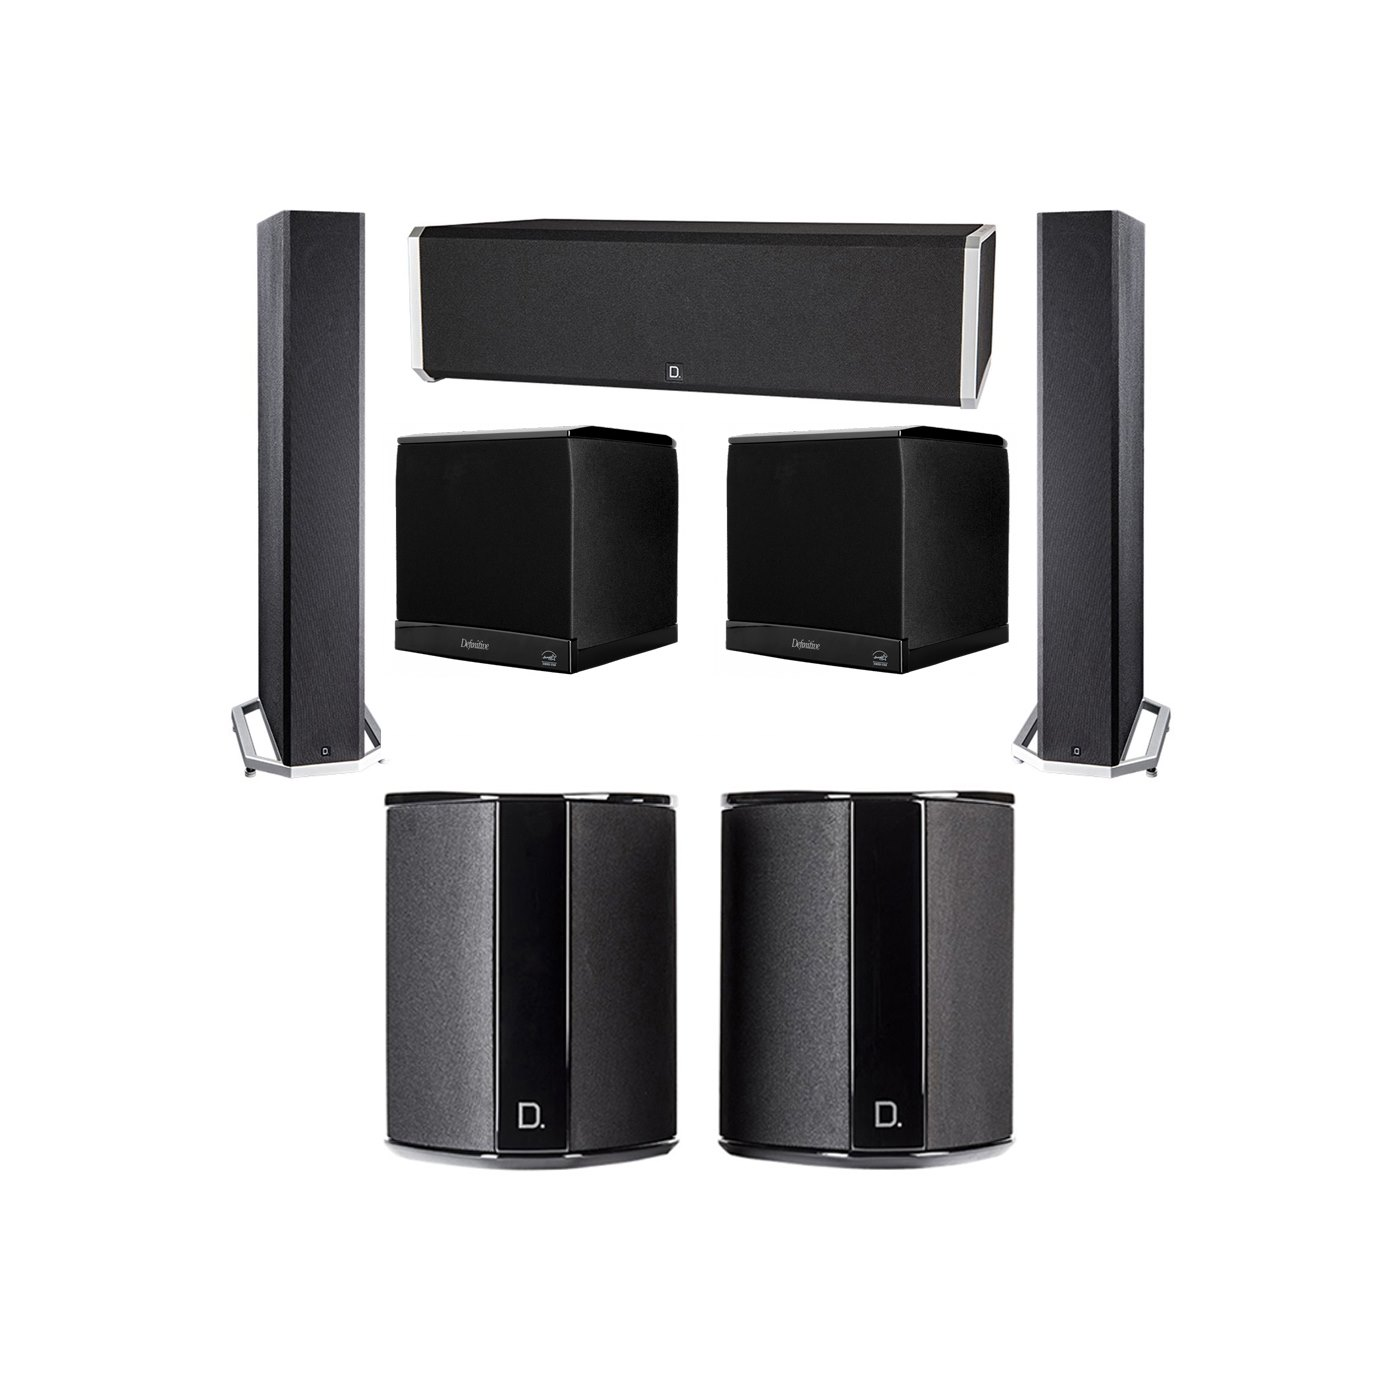 Definitive Technology 5.2 System with 2 BP9040 Tower Speakers, 1 CS9040 Center Channel Speaker, 2 SR9040 Surround Speaker, 2 Definitive Technology SuperCube 4000 Powered Subwoofer